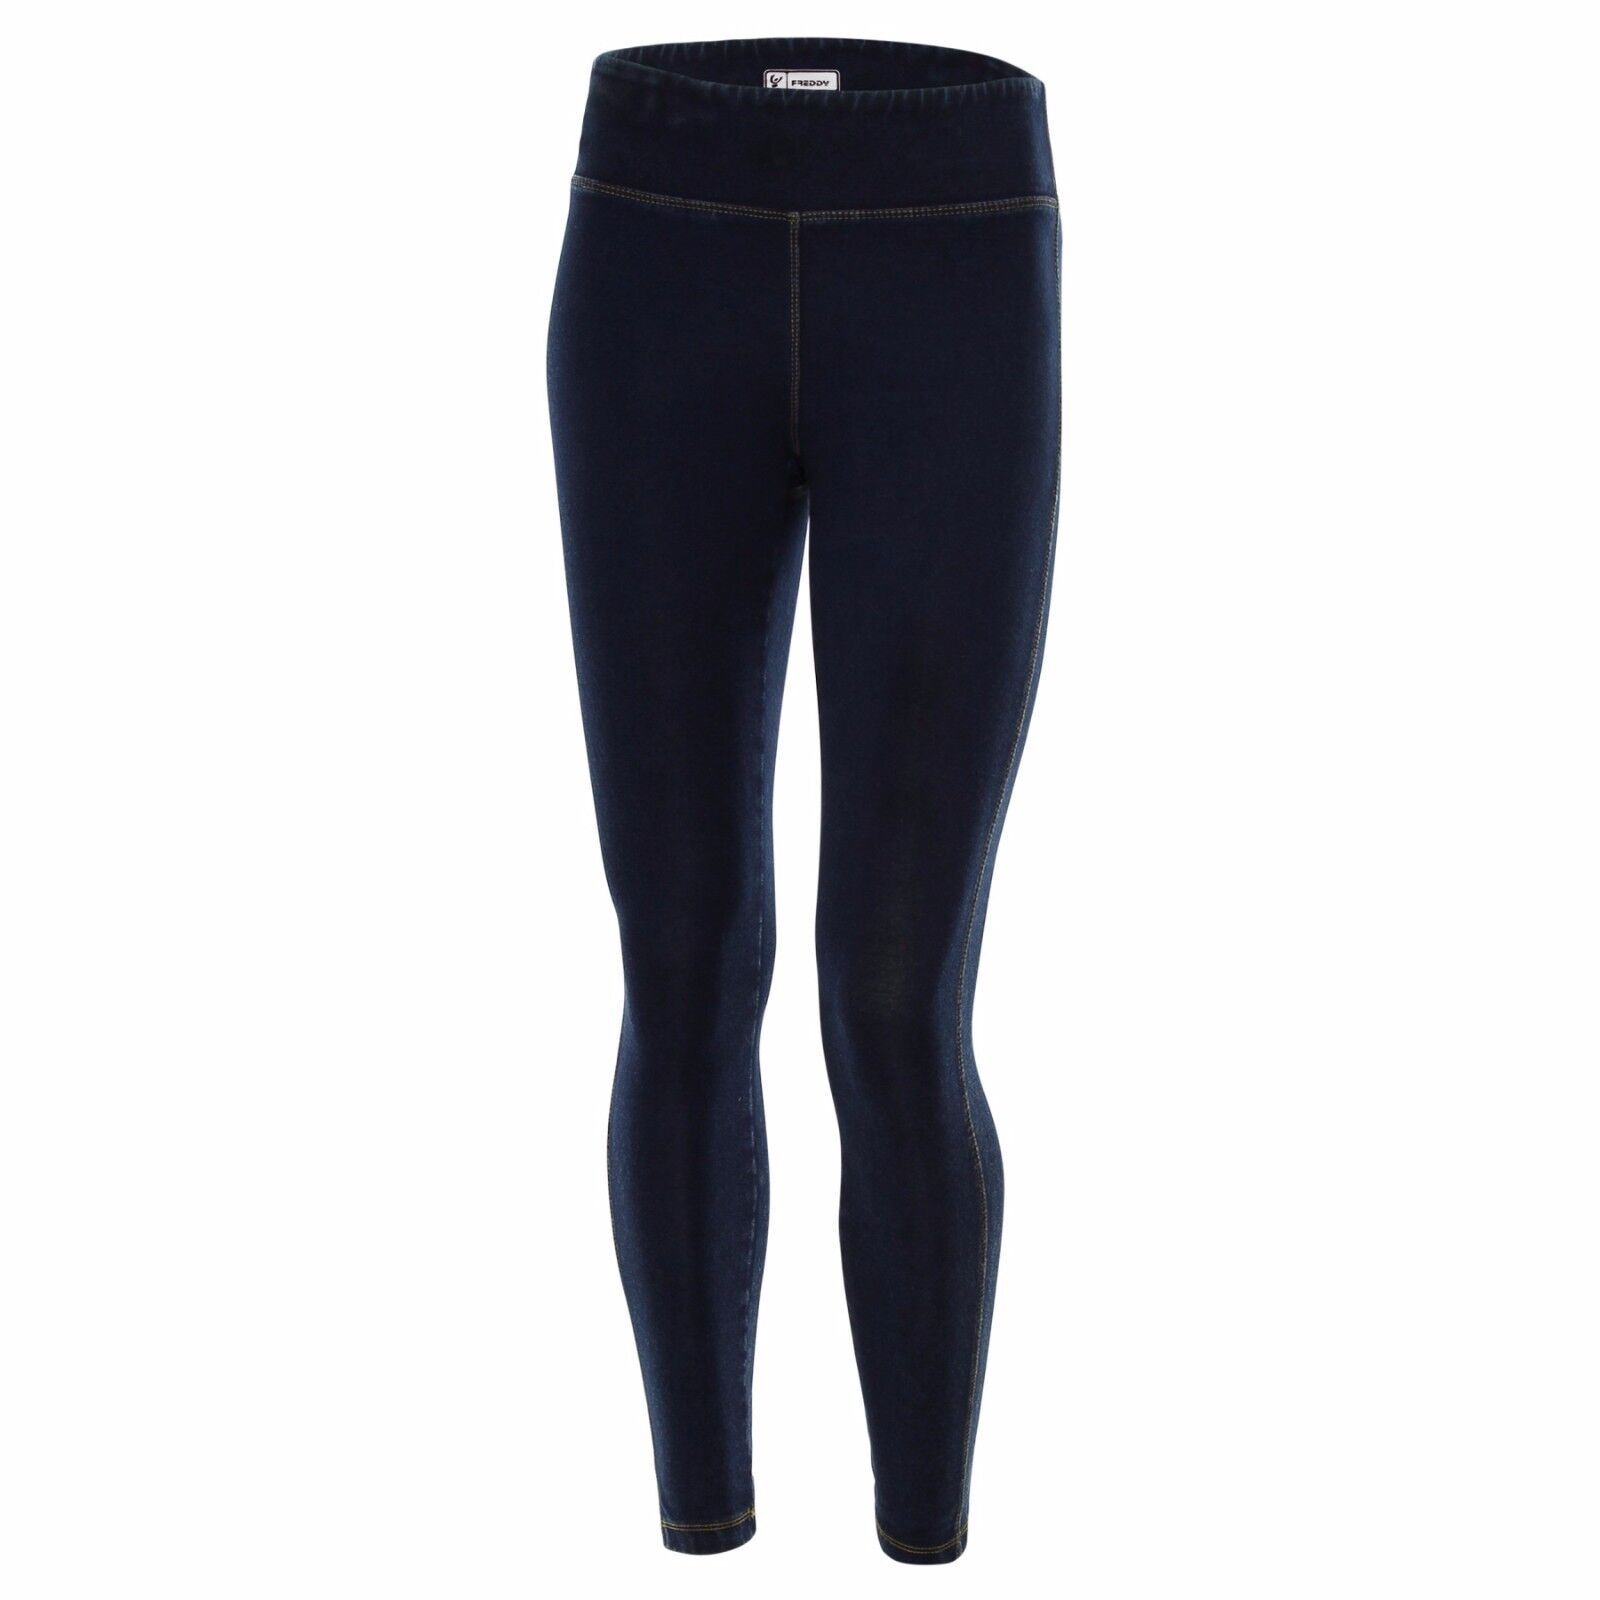 SCONTO 30% FREDDY LEGGINGS SUPERFIT 7/8 IN DENIM WSFIT1L05B04 PANTALONI XS S M L